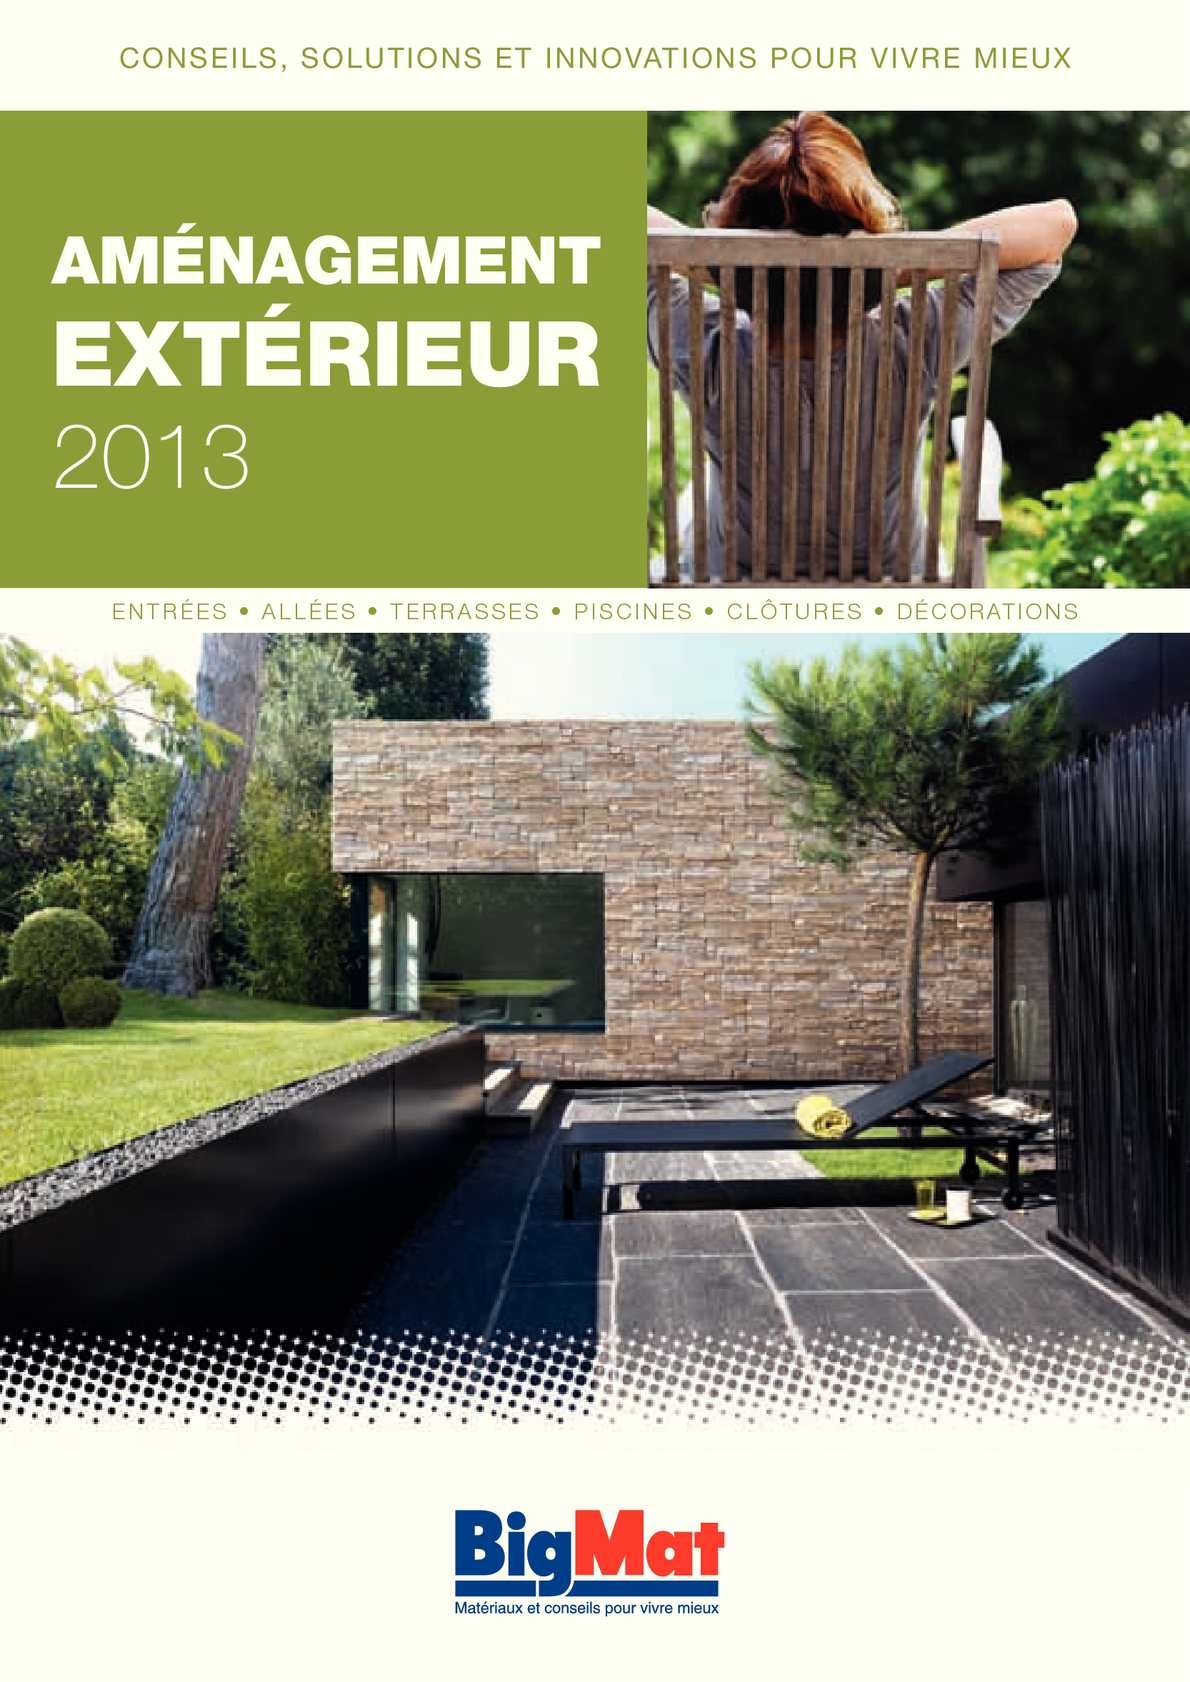 Calam o catalogue am nagement ext rieur 2013 bigmat girardon for Catalogue amenagement exterieur